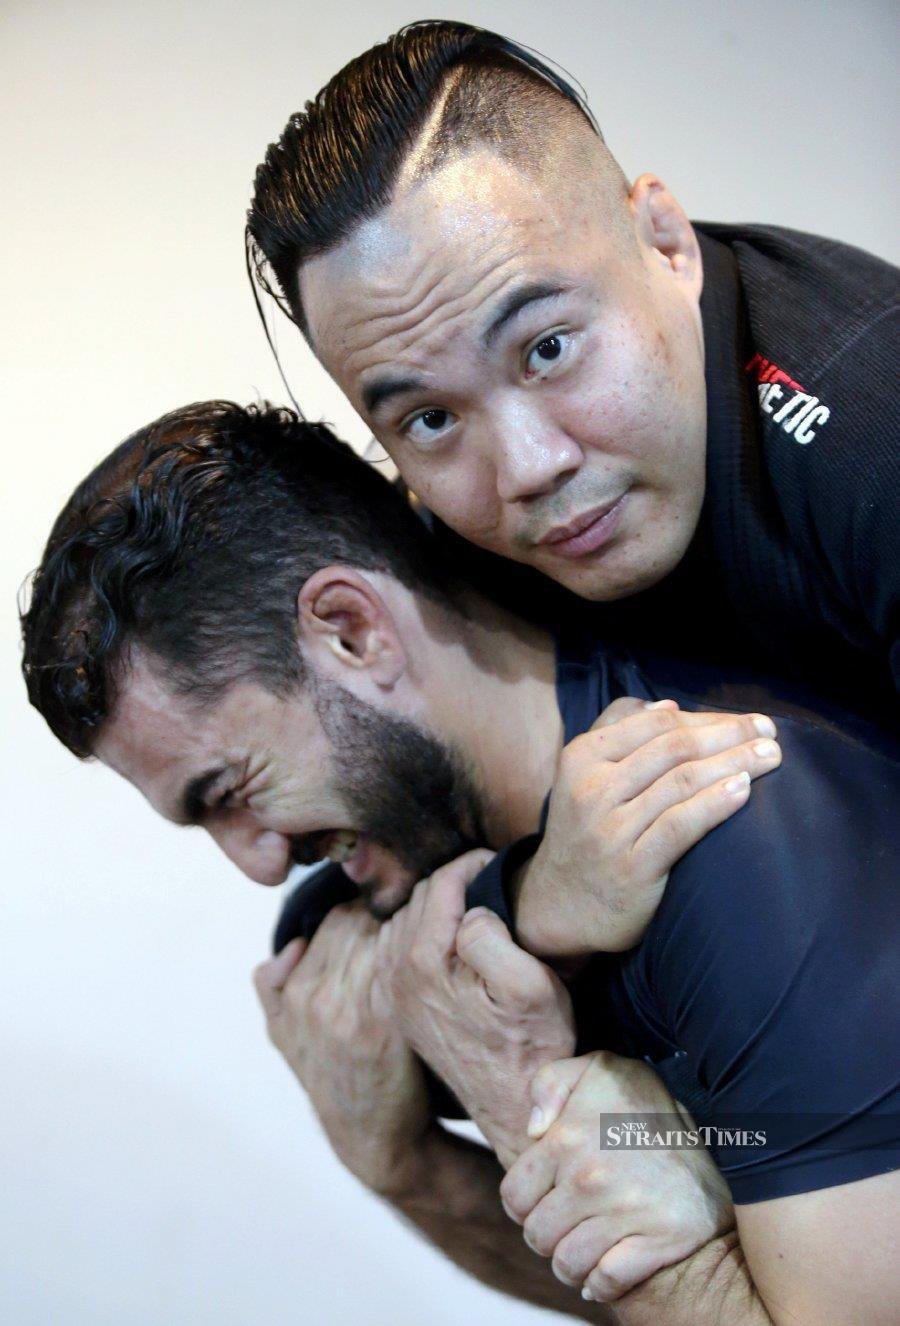 Brazilian Jiu Jitsu champion Aaron Goh shows just why he's a